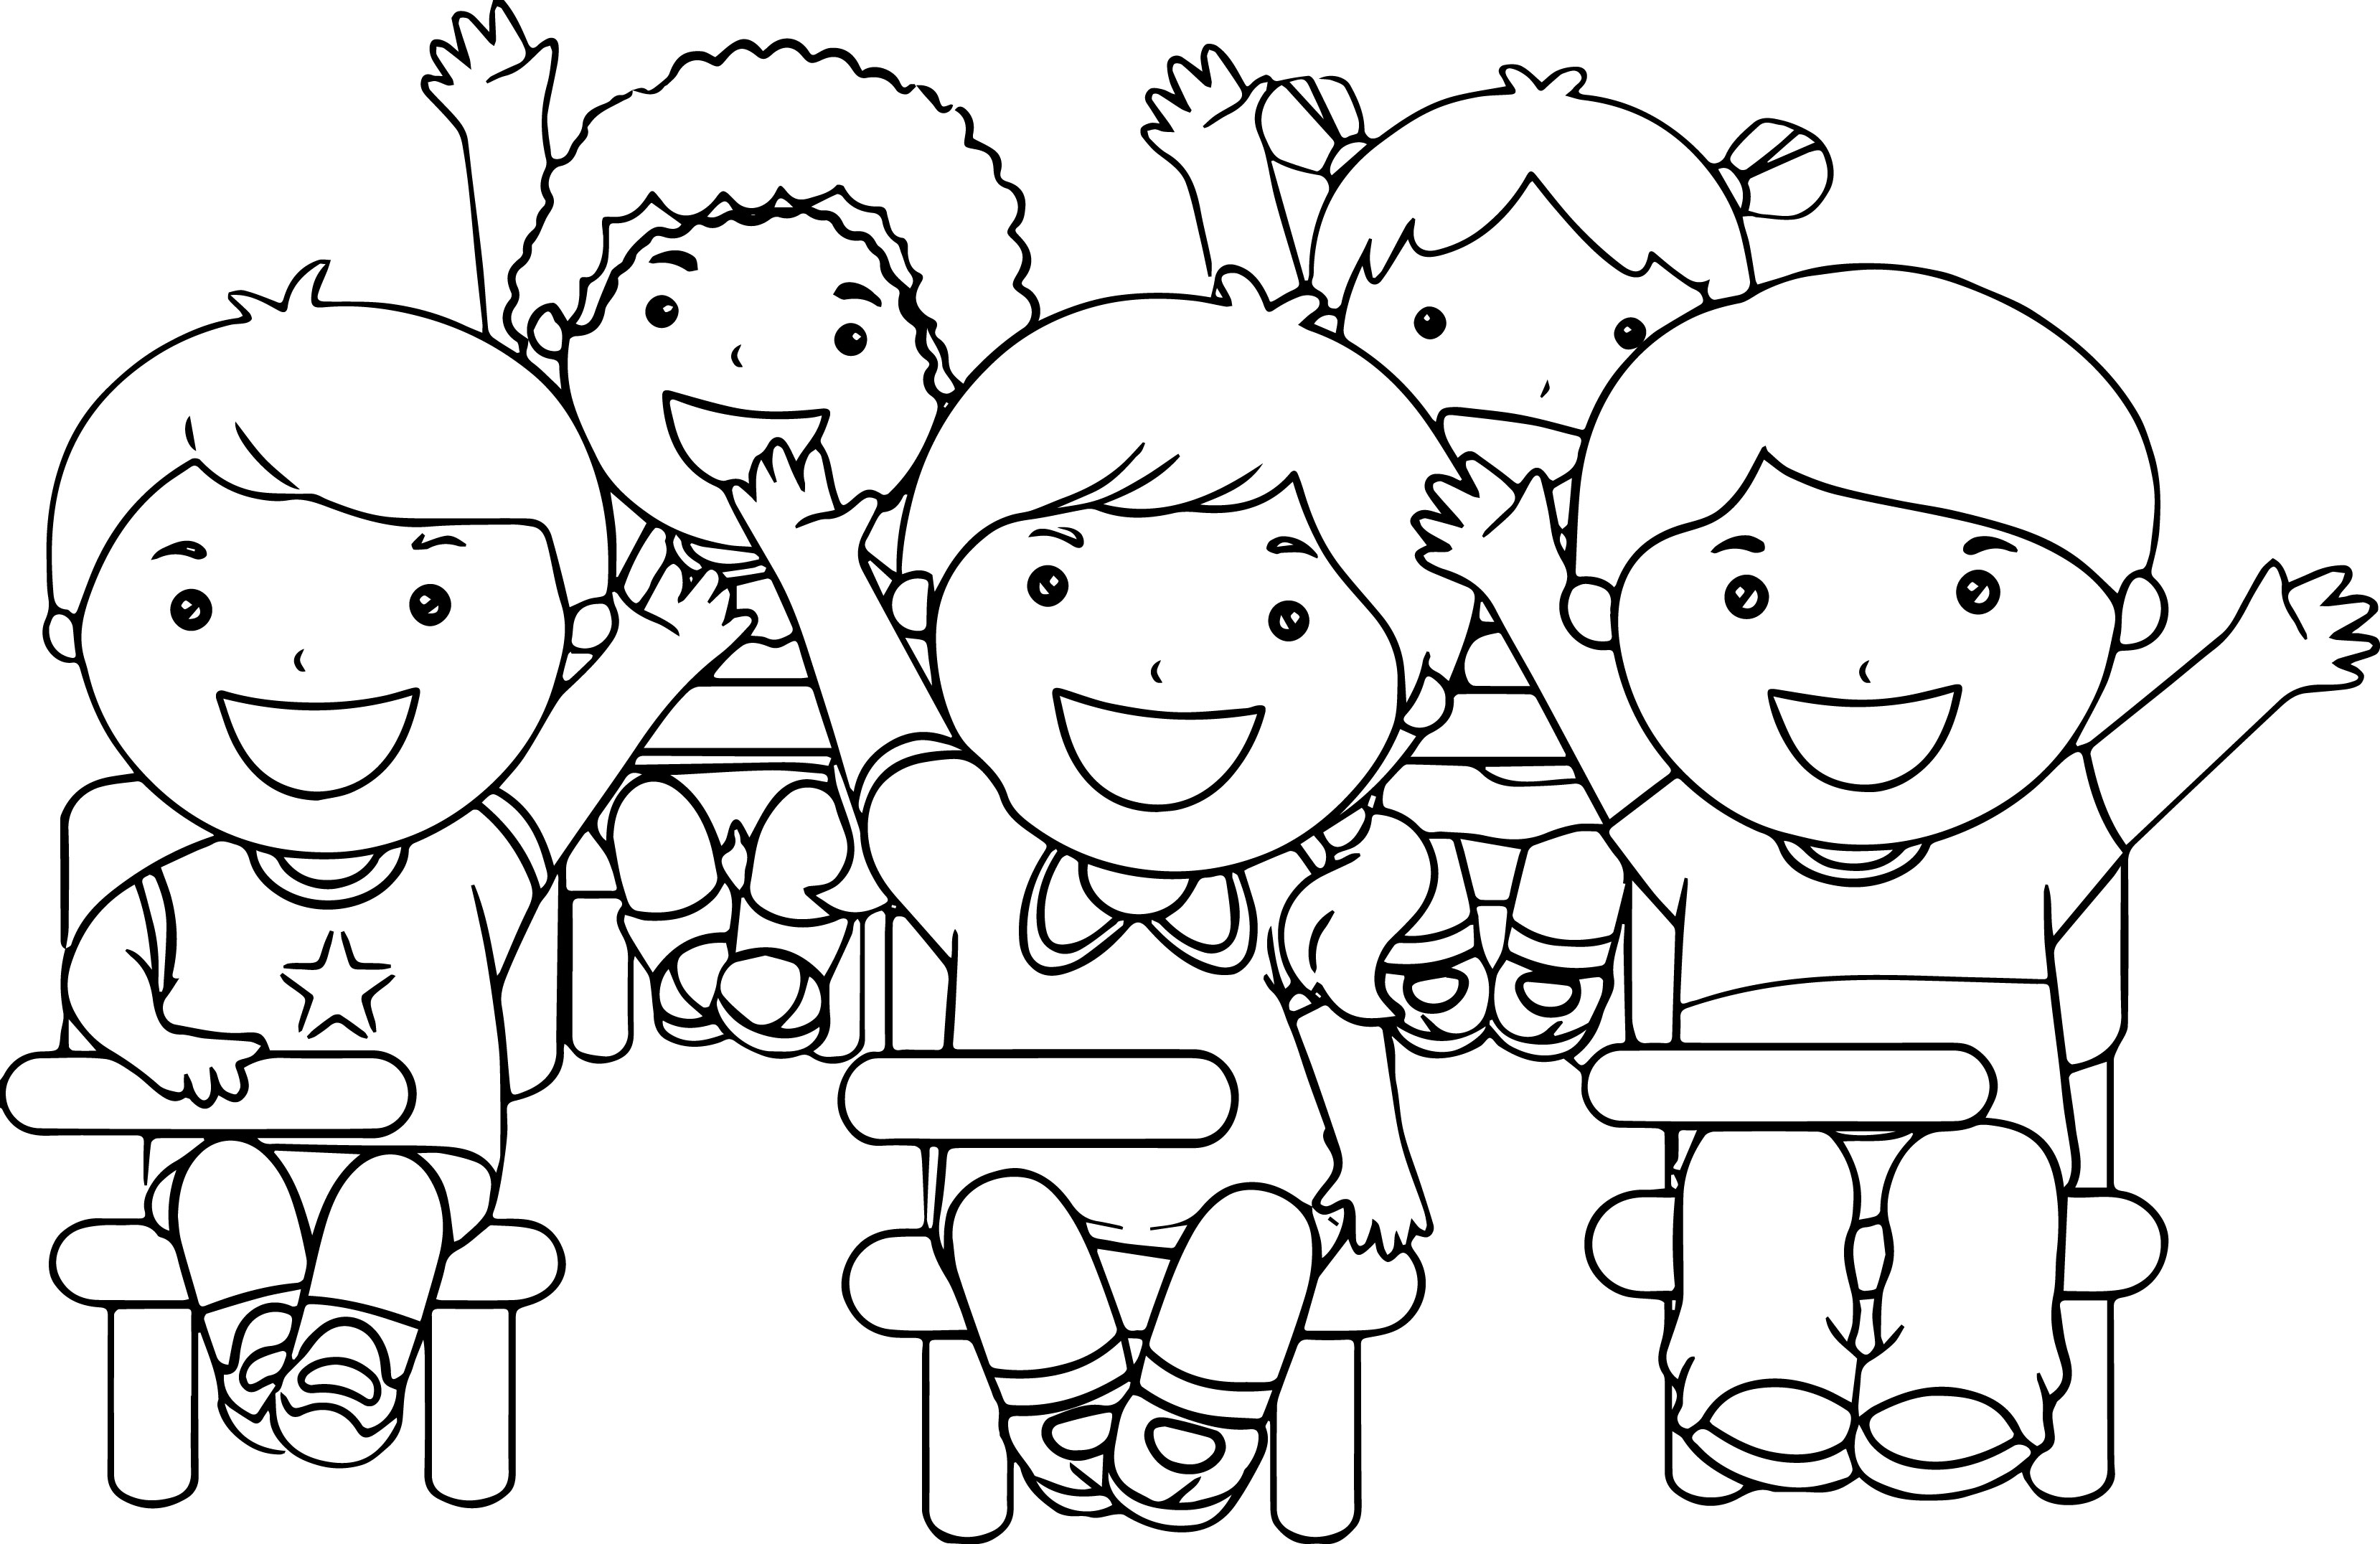 Children Coloring Pages isolution Printable Of 13 Kid Coloring Pages Line Gallery